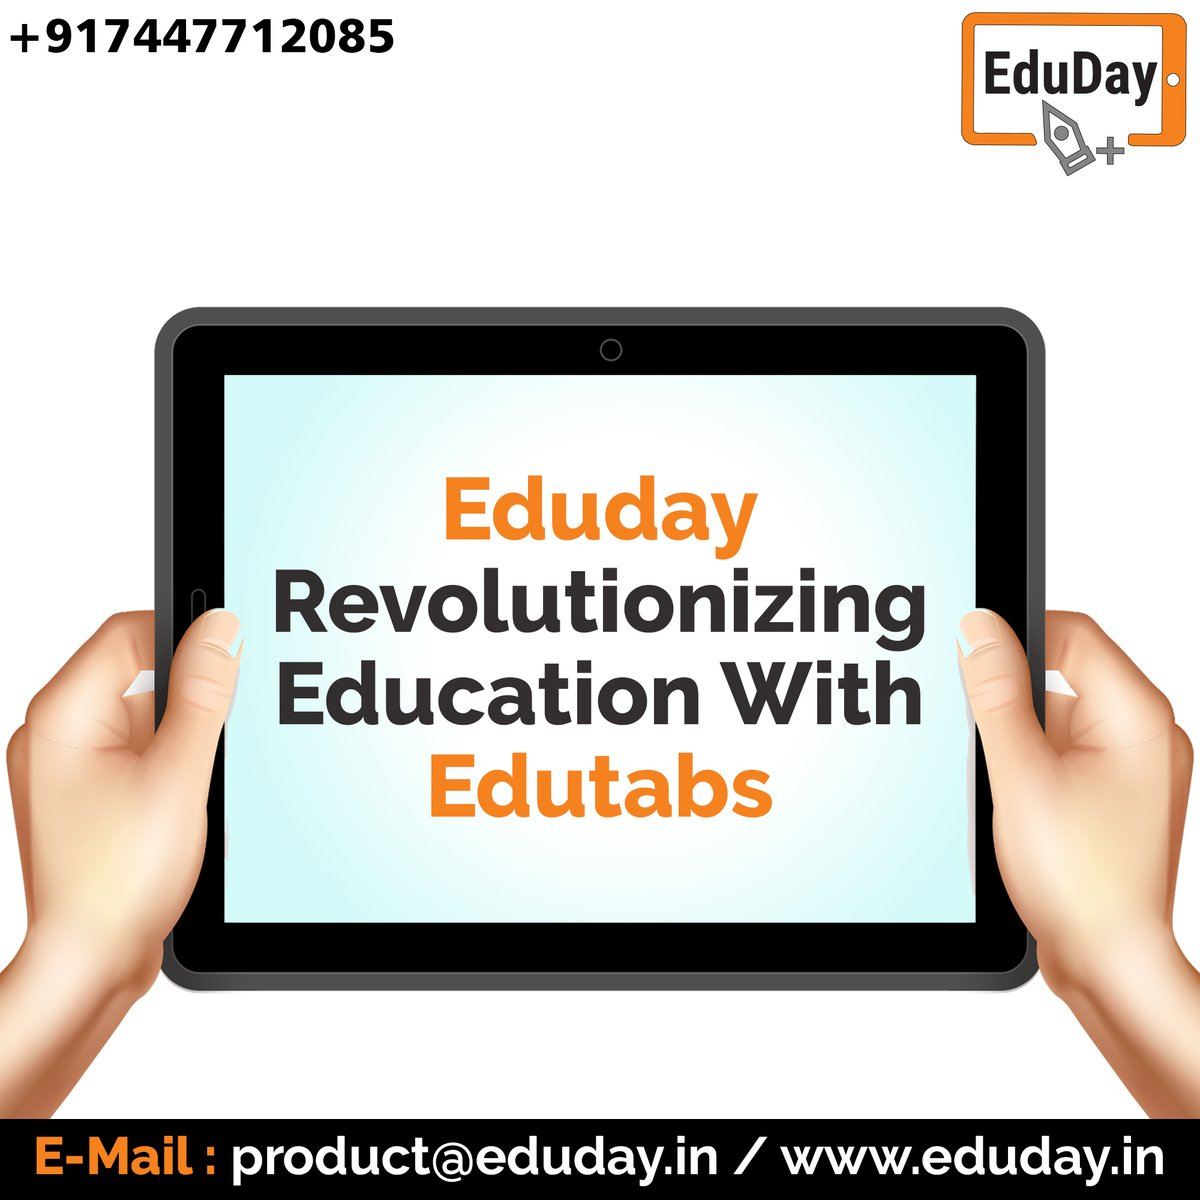 Transform Teaching, Inspire Learning and Deliver a world-class Student Experience.  Get in touch to know more:- Phone : +91 7447712085 E-Mail: product@eduday.in visit:- http://www.eduday.in  #eduday #edudayindia #pune #india #tab #tablets #CoachingInstitute #Coachingclassesspic.twitter.com/nTGDiz6QQd